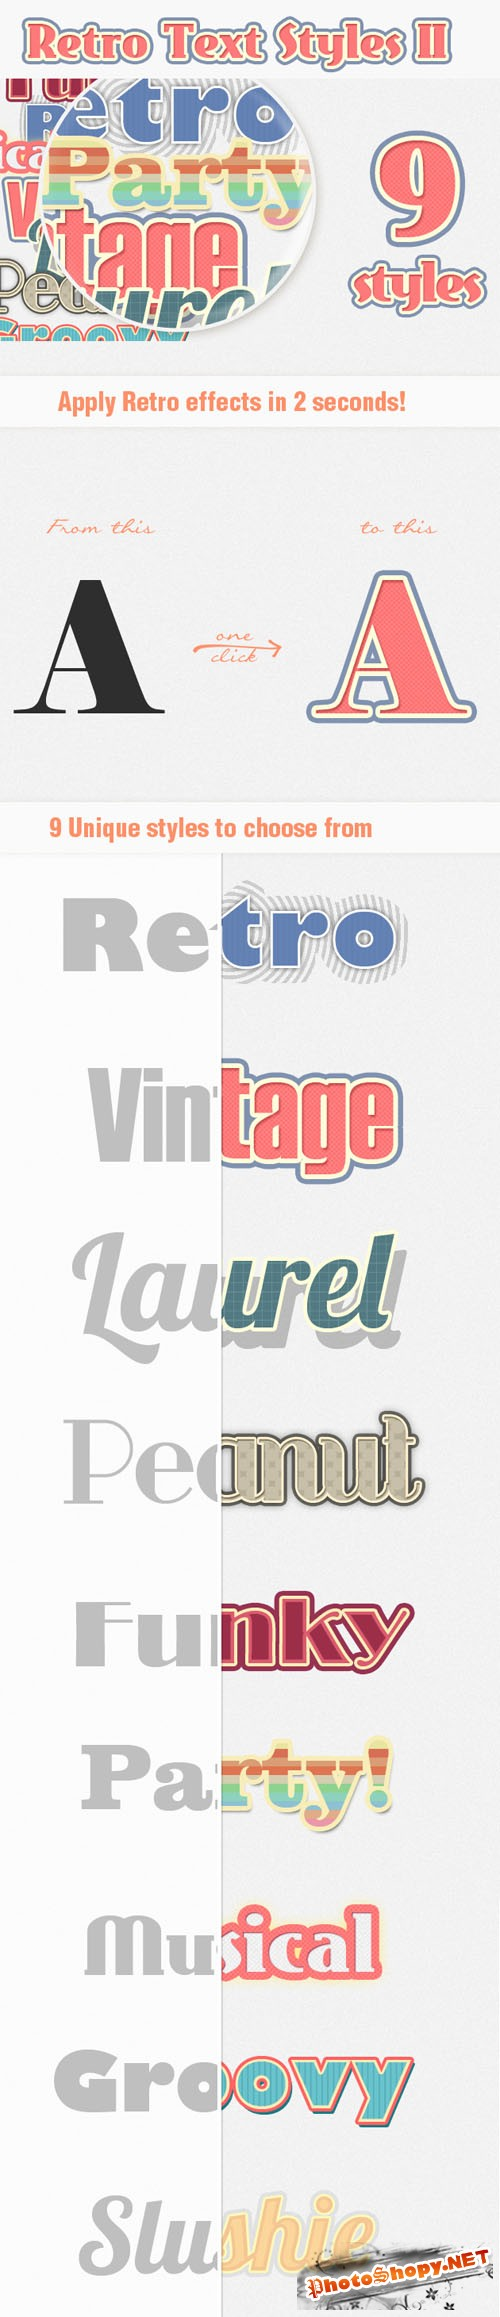 Designtnt - Retro Text Styles Set 2